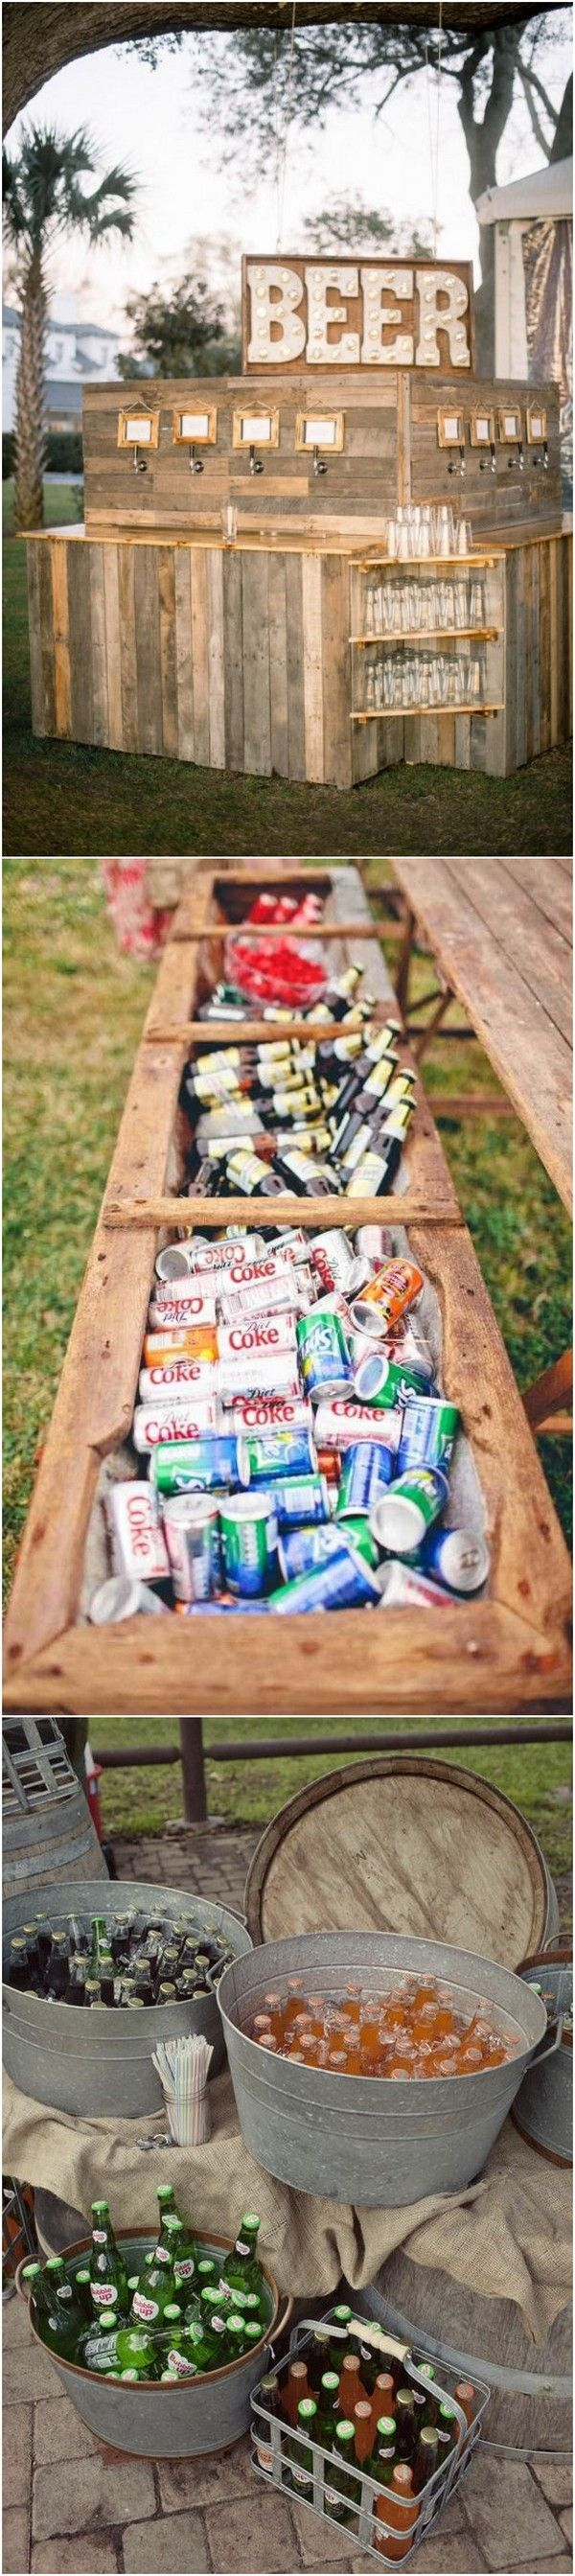 20 Amazing Drink Stations for Outdoor Wedding Ideas | Drink bar, Bar ...